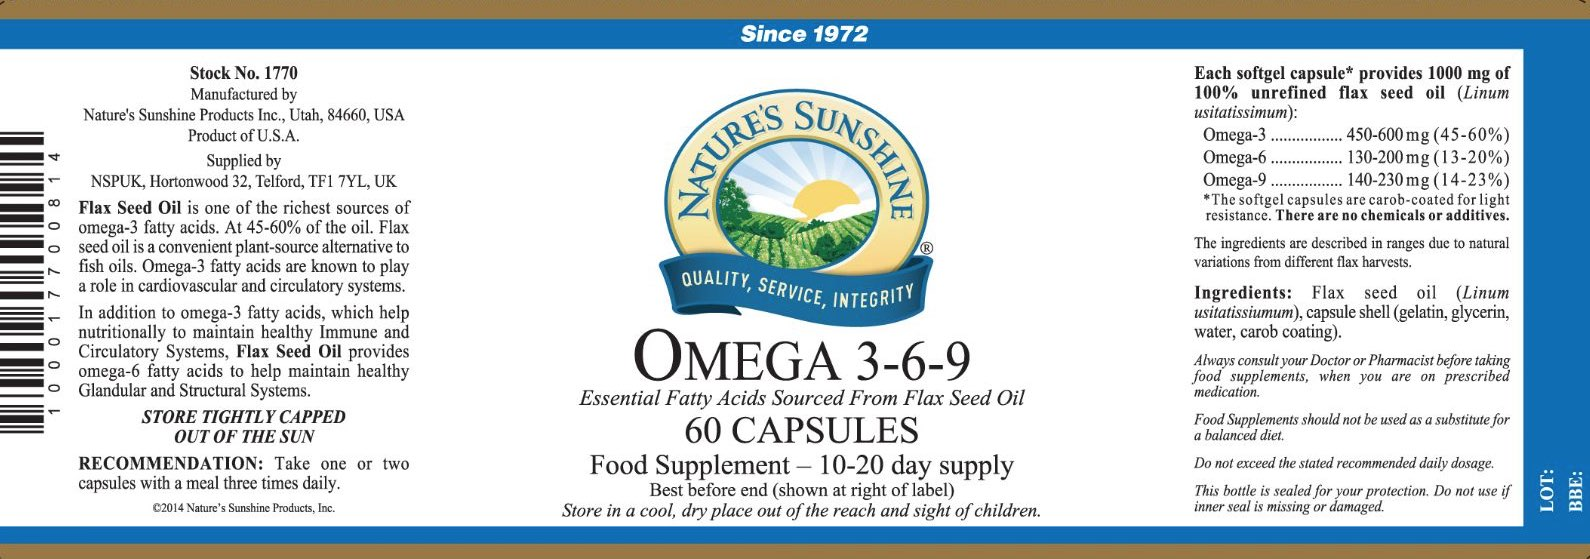 Nature's Sunshine - Omega 3-6-9 Flax Seed Oil - Label